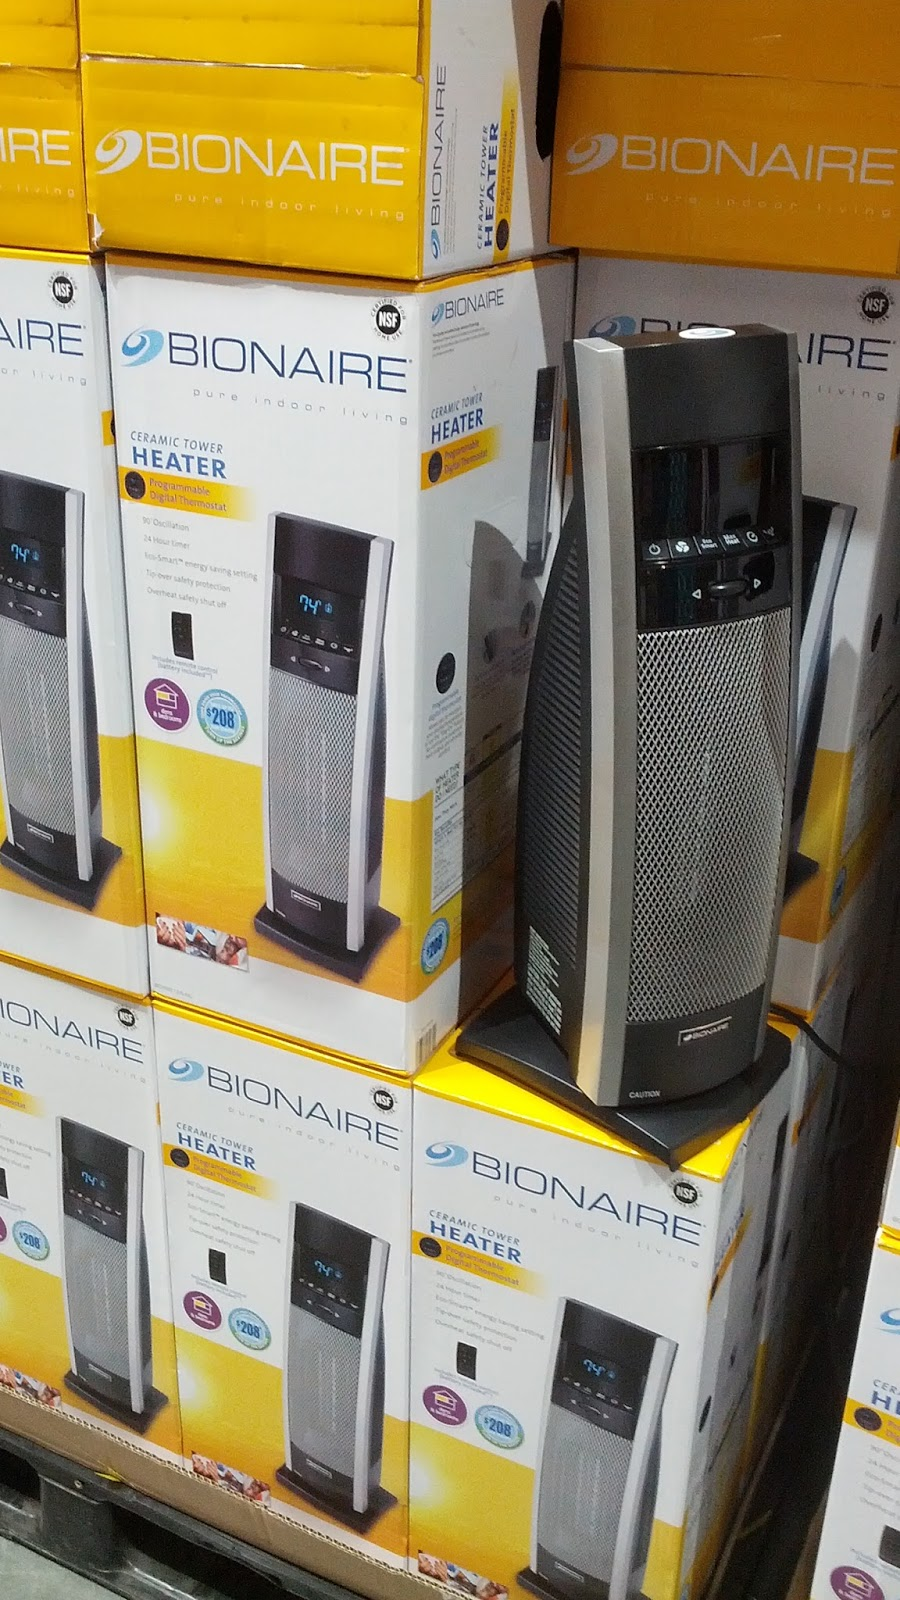 Bionaire Digital Ceramic Tower Heater For The Home